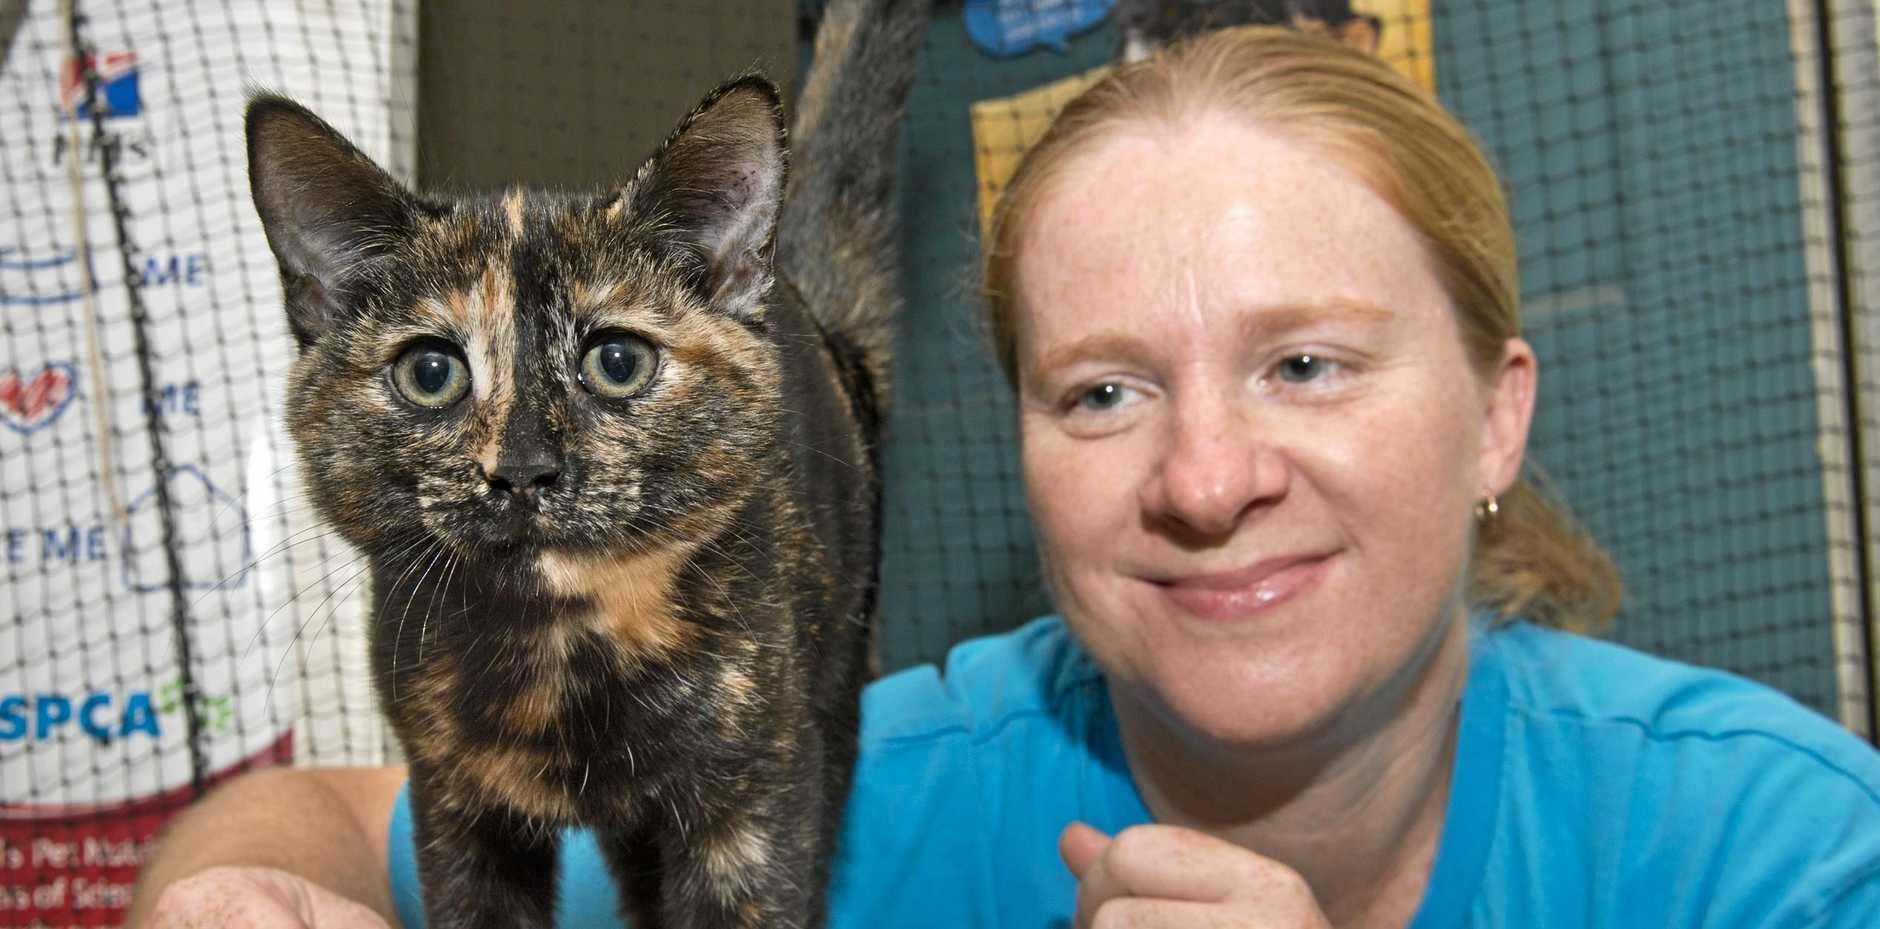 PET PORTAL: Cassie Ellis, Toowoomba Animal Care Centre manager with surrended kitten. Friday, 16th Feb, 2018.